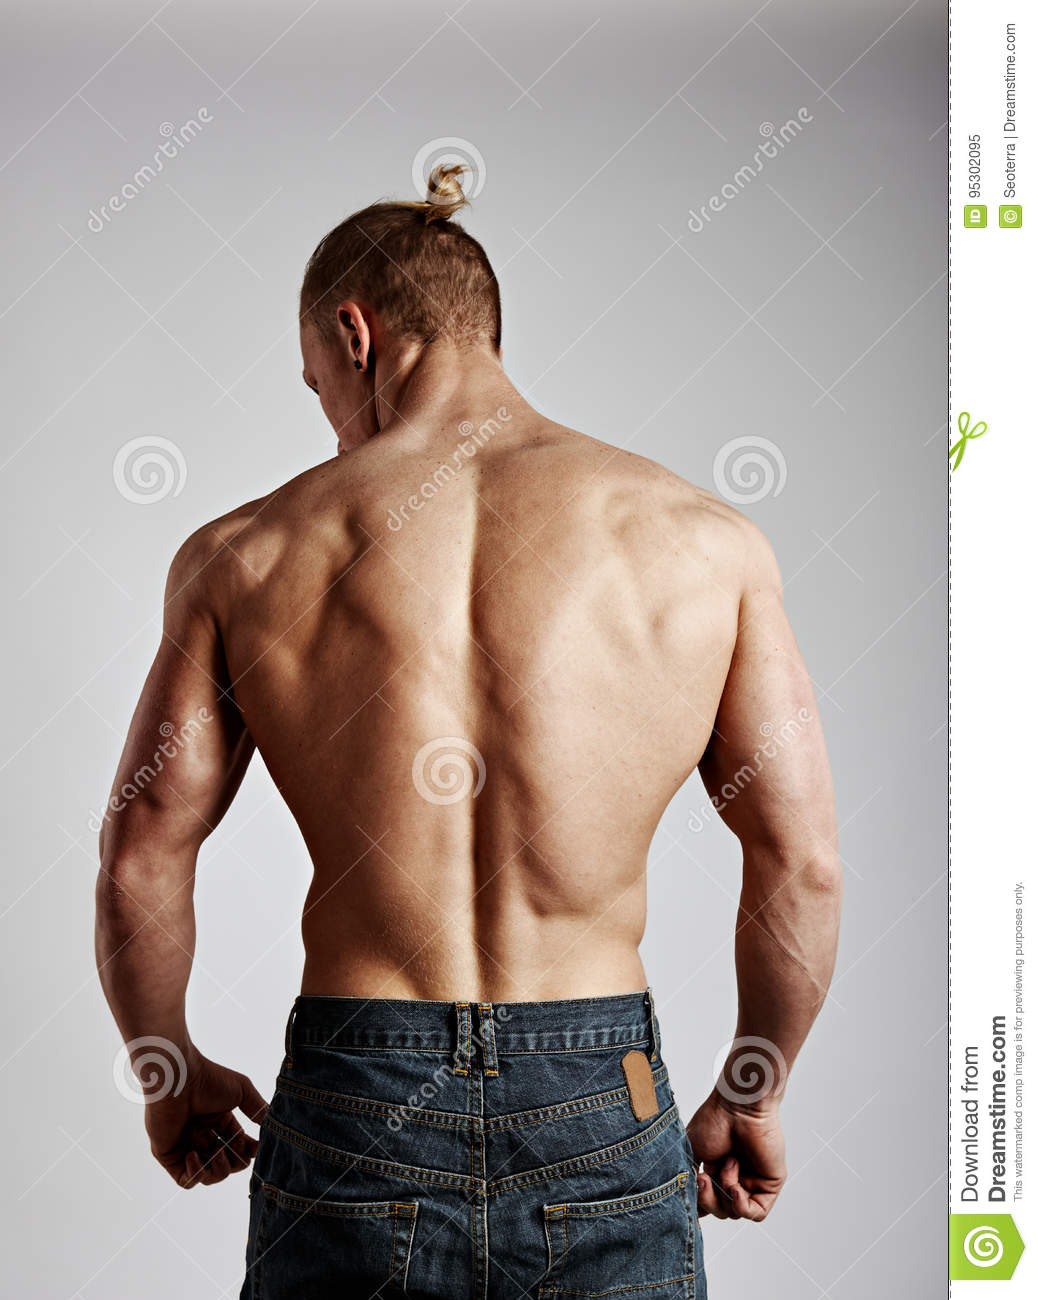 Share your naked man back view would